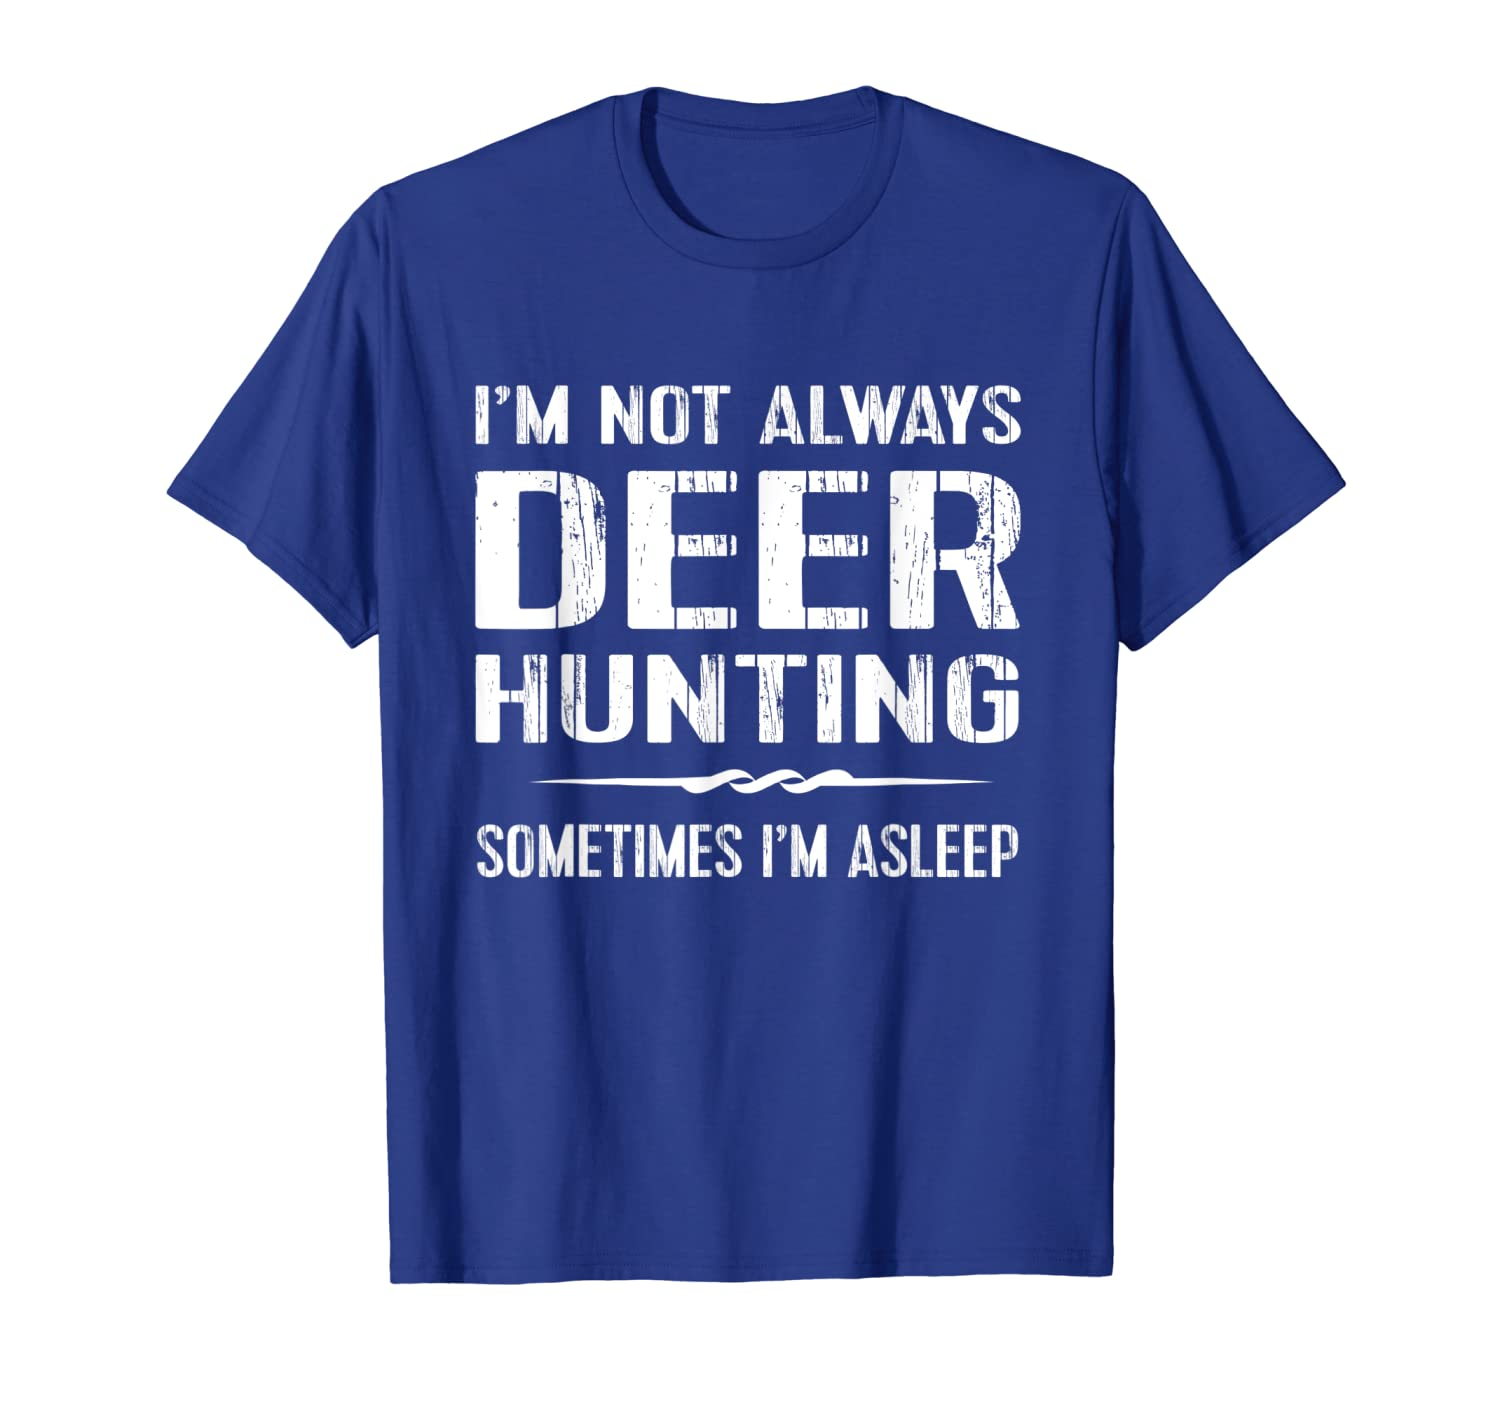 Funny Deer Hunting TShirt: Im Not Always Hunting Tee Unisex Tshirt